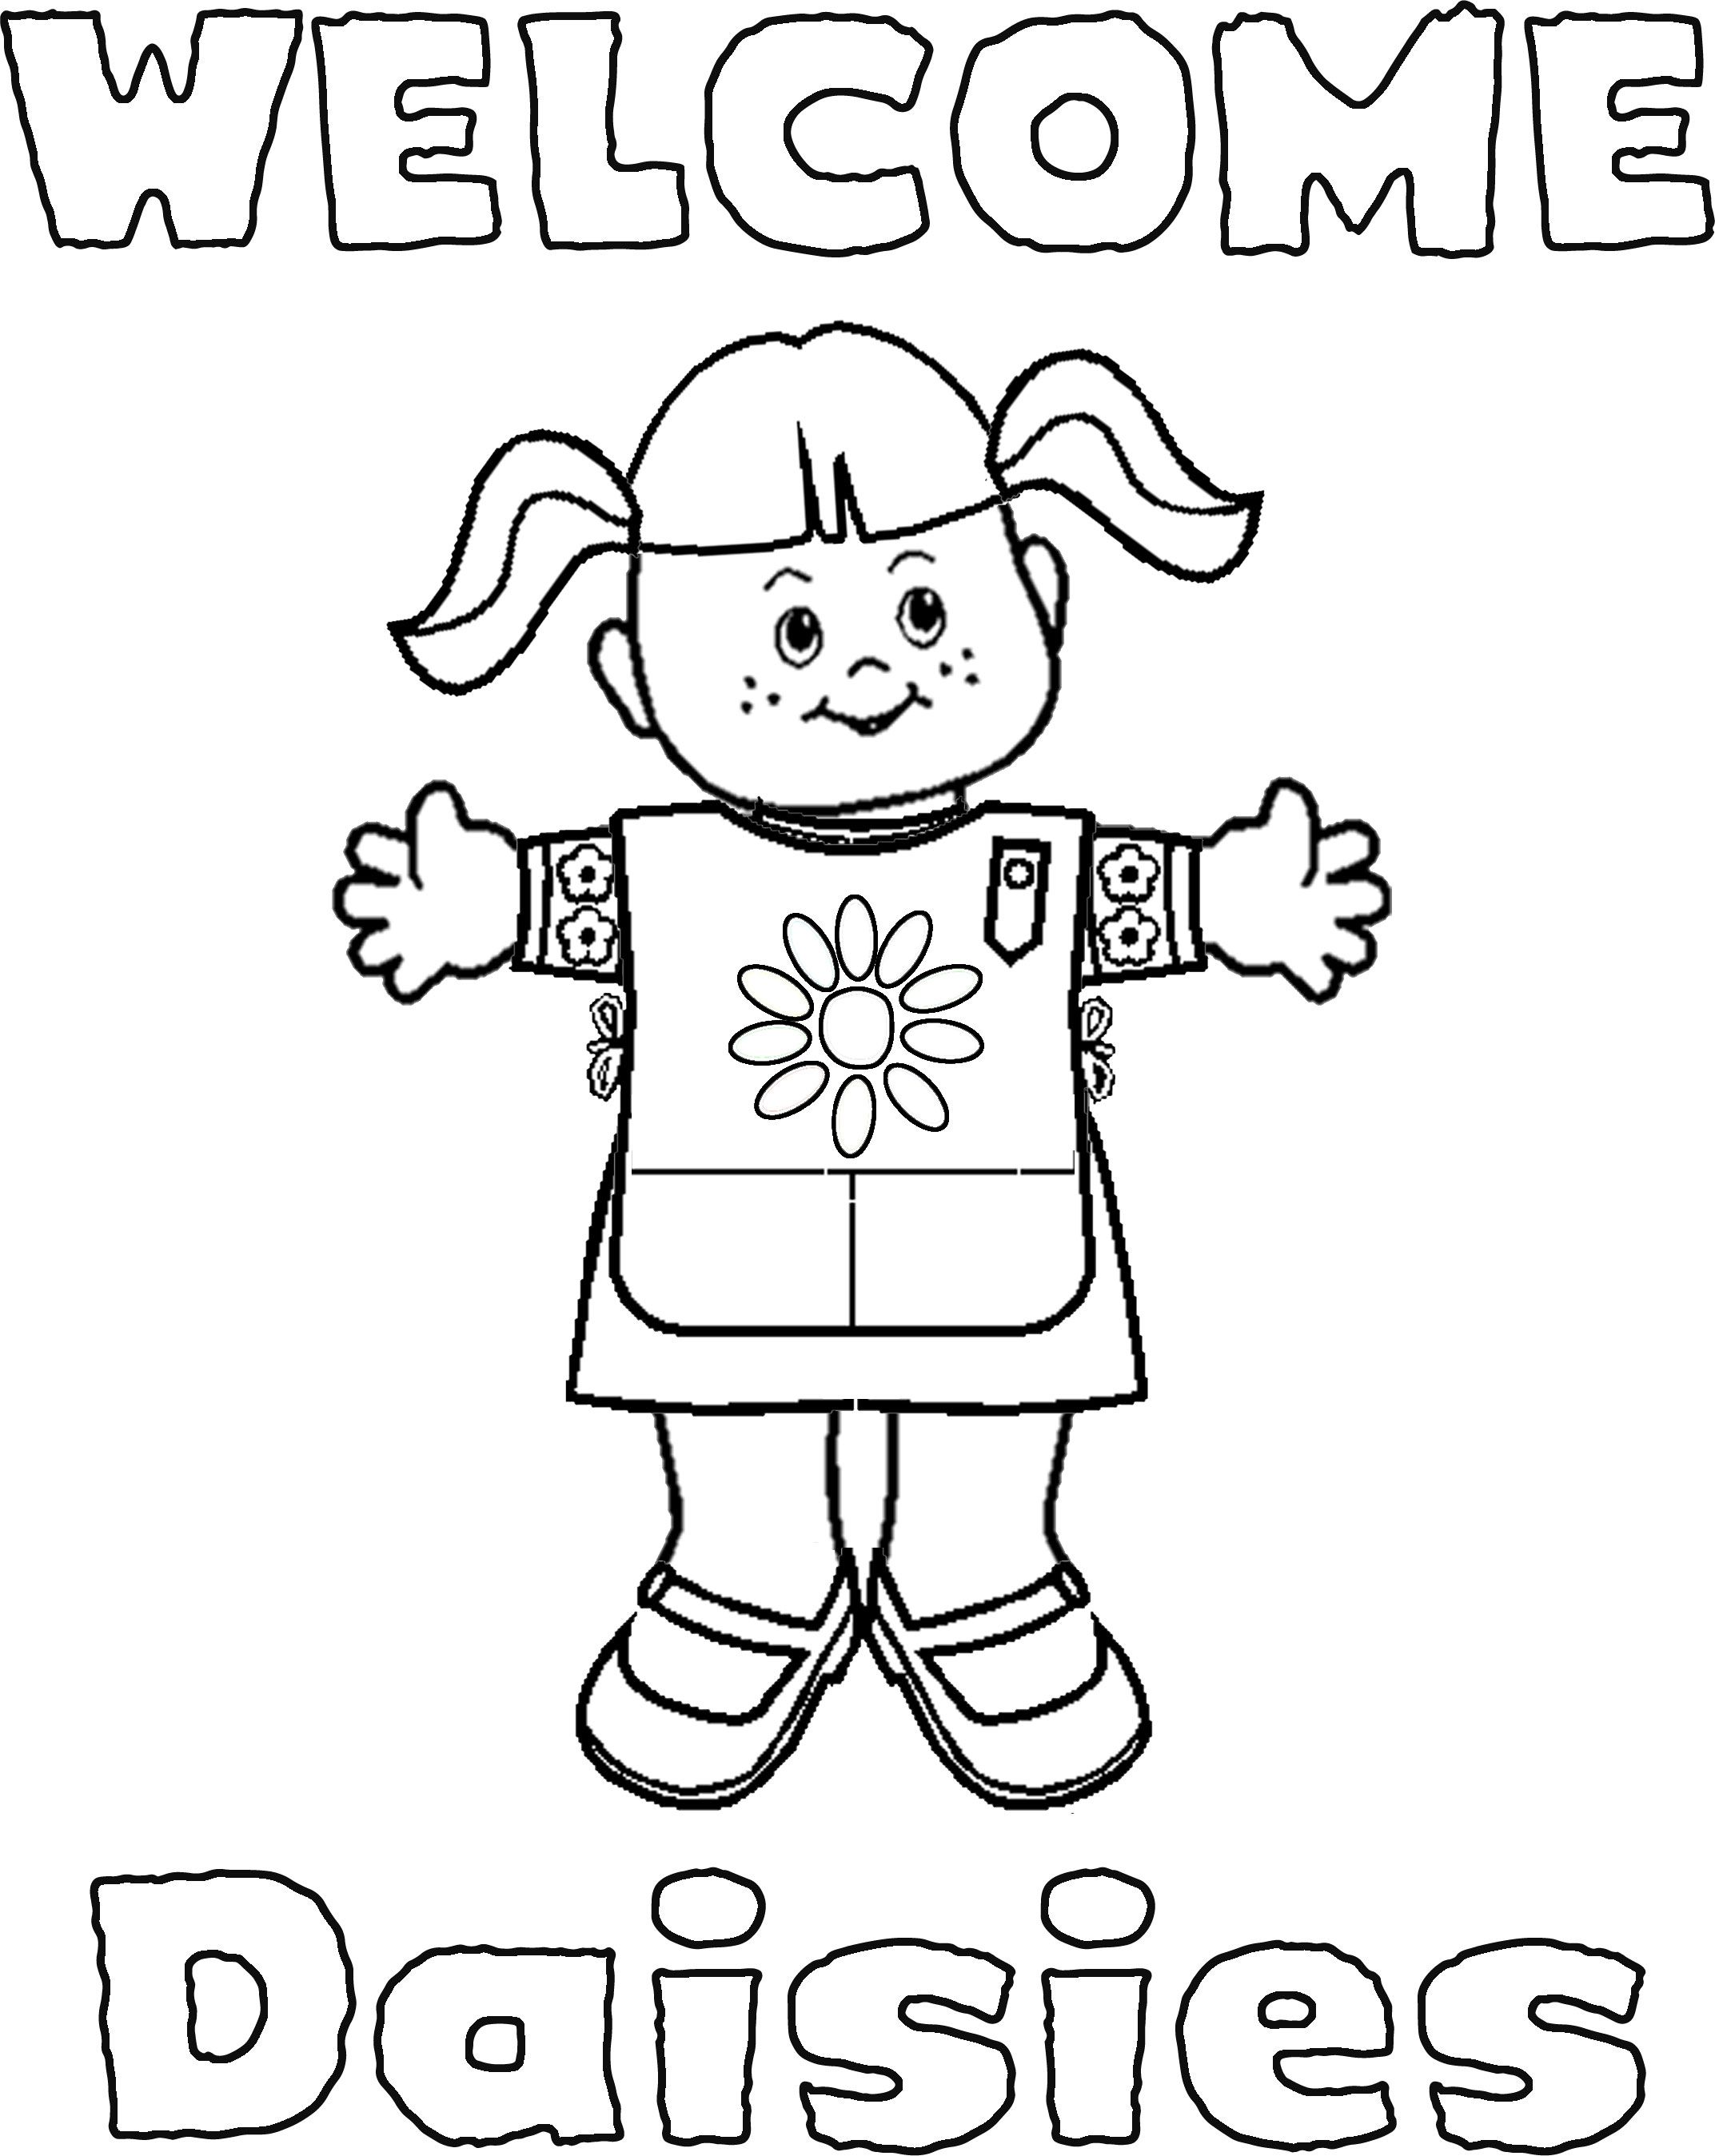 girl scout daisy coloring pages # 1